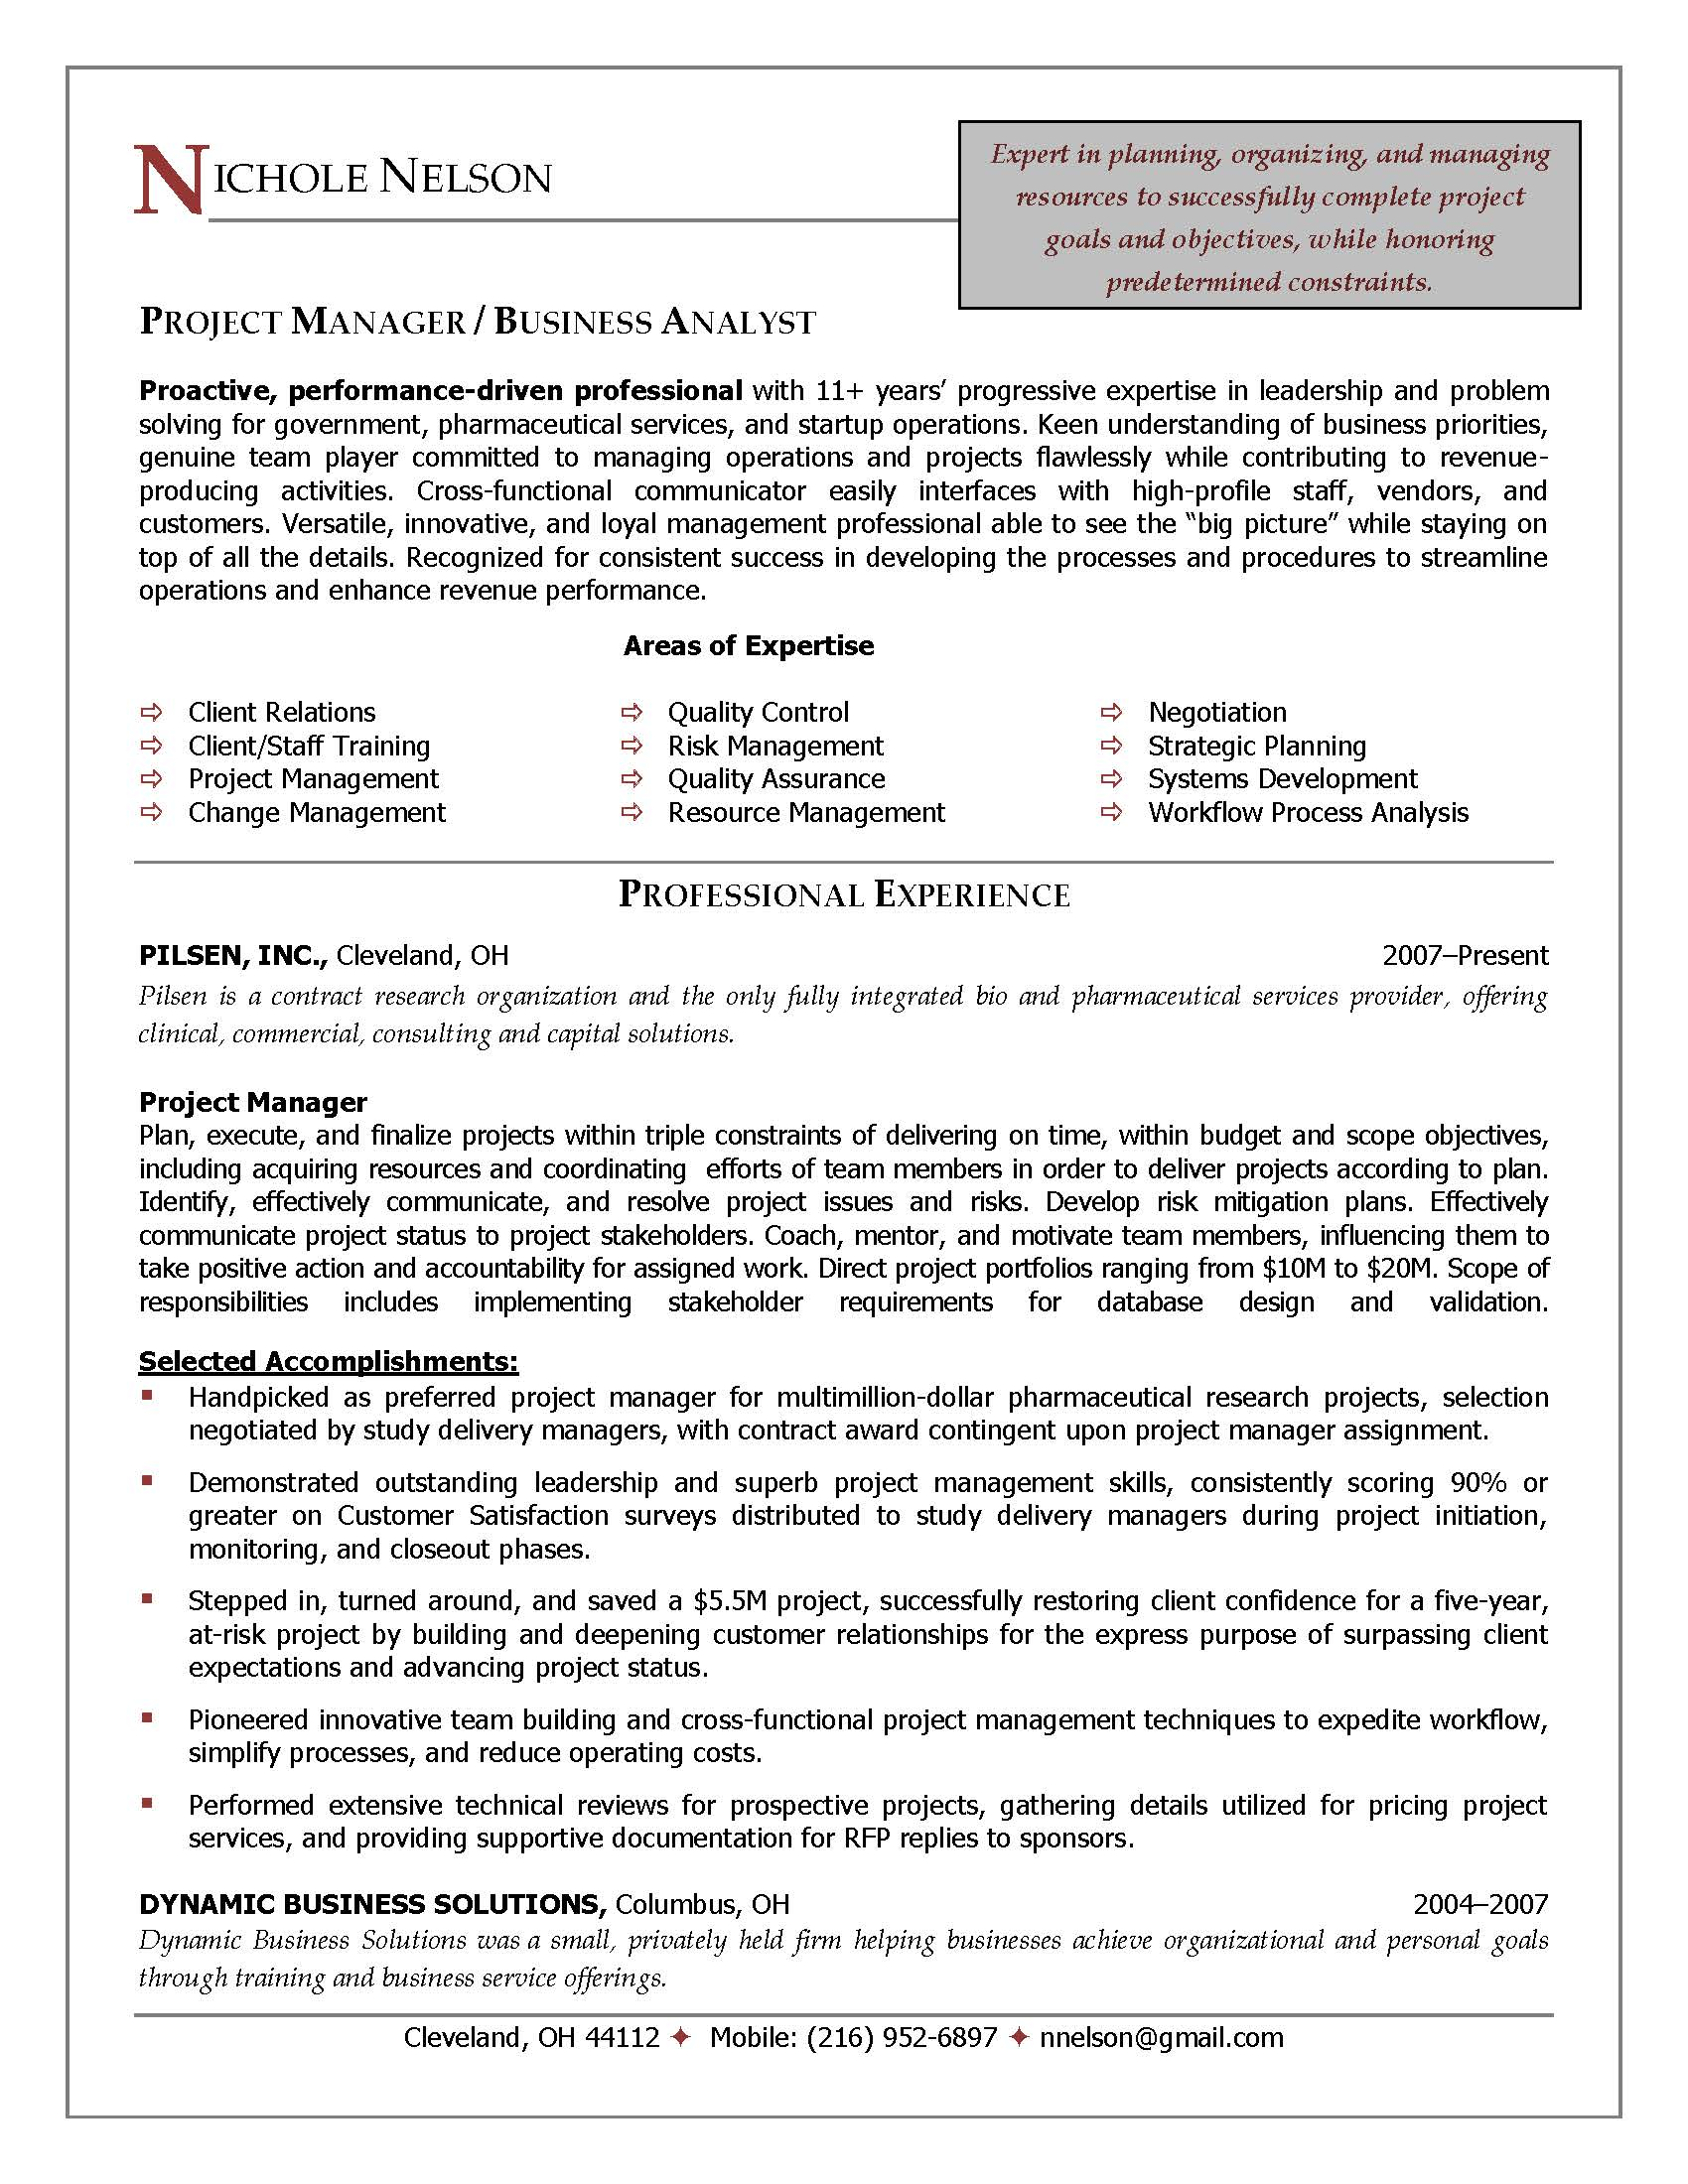 Resume Samples Elite Resume Writing